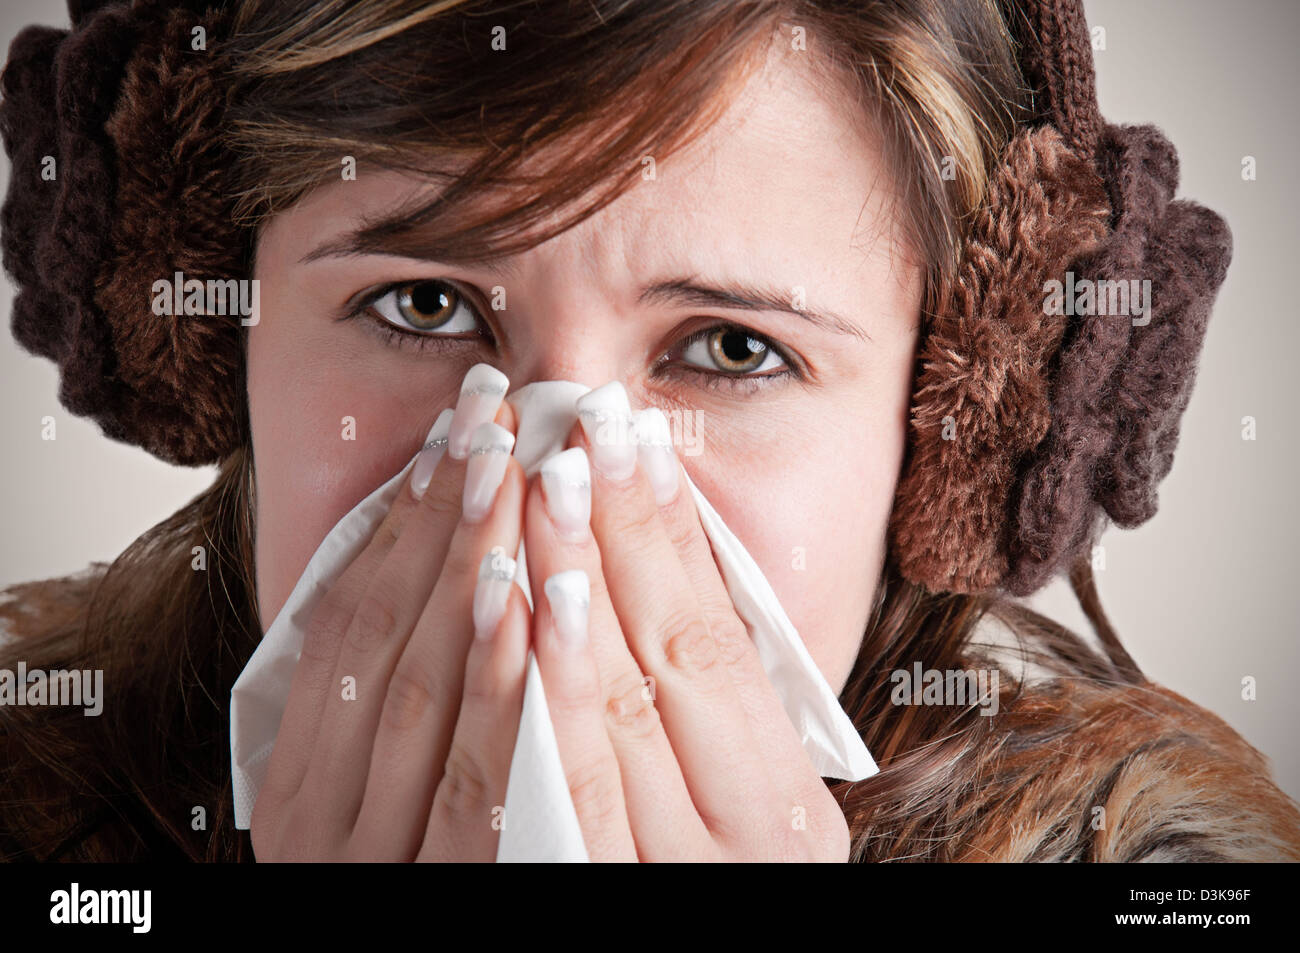 Pale sick woman with a flu, sneezing, in a dark background - Stock Image